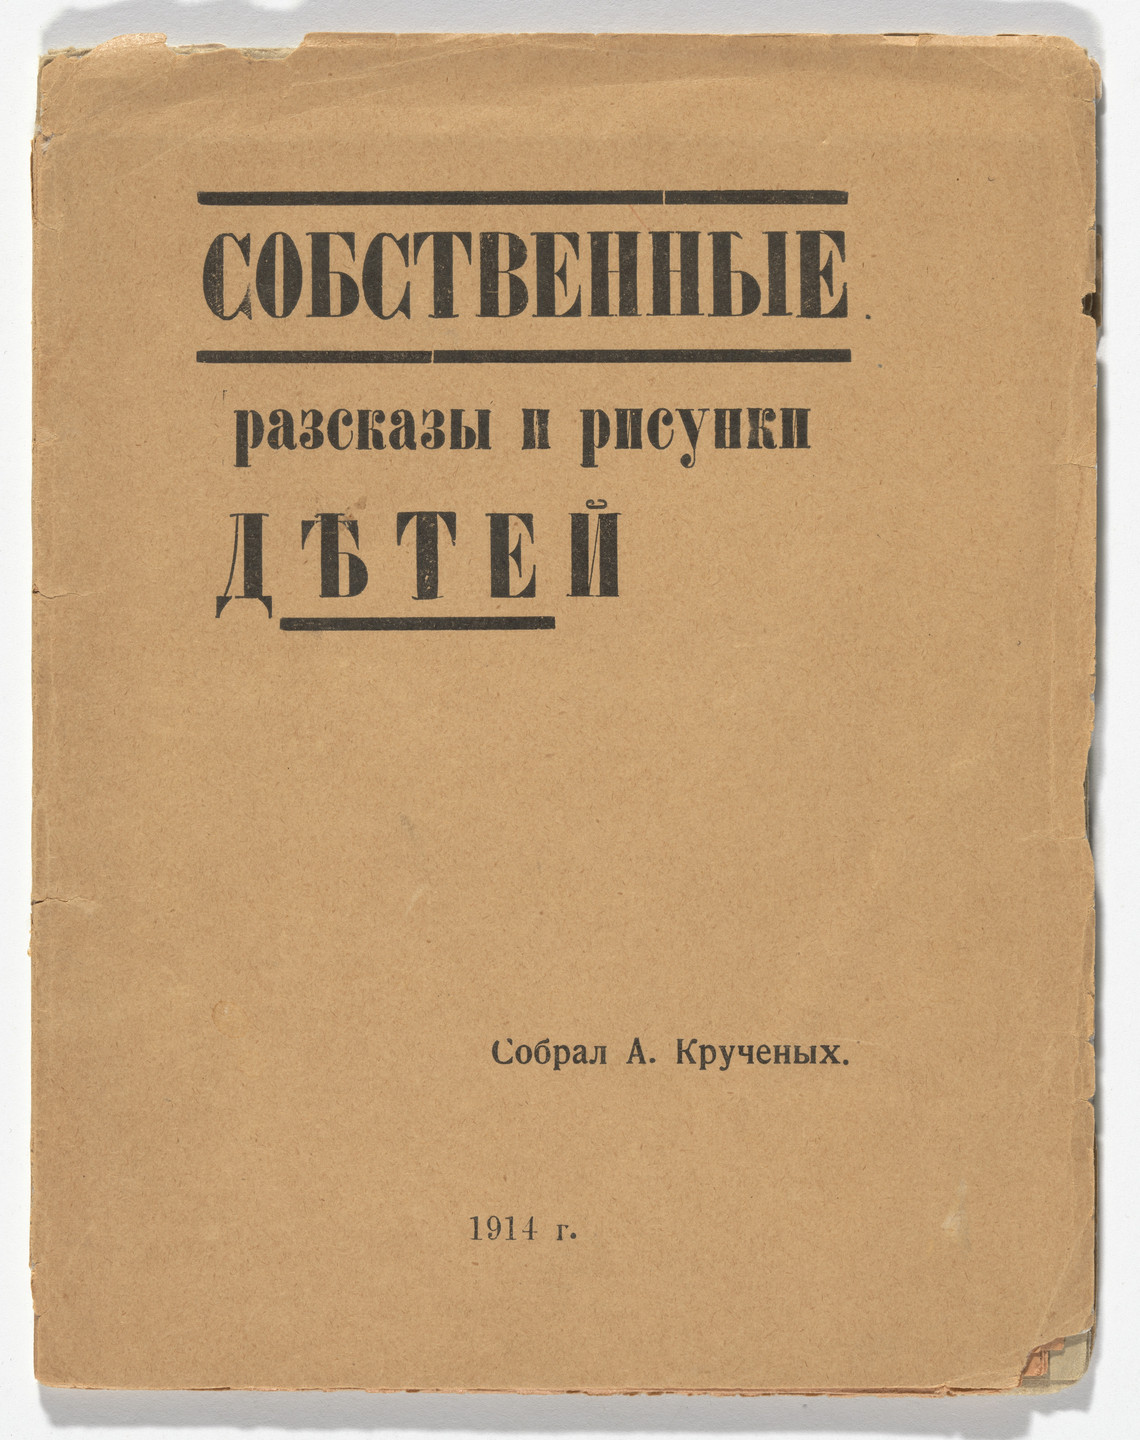 P. Bakharev, Marianna Erlikh, Nina Kul'bina. Sobstvennye razskazy i risunki detei (Actual Stories and Drawings by Children). 1914